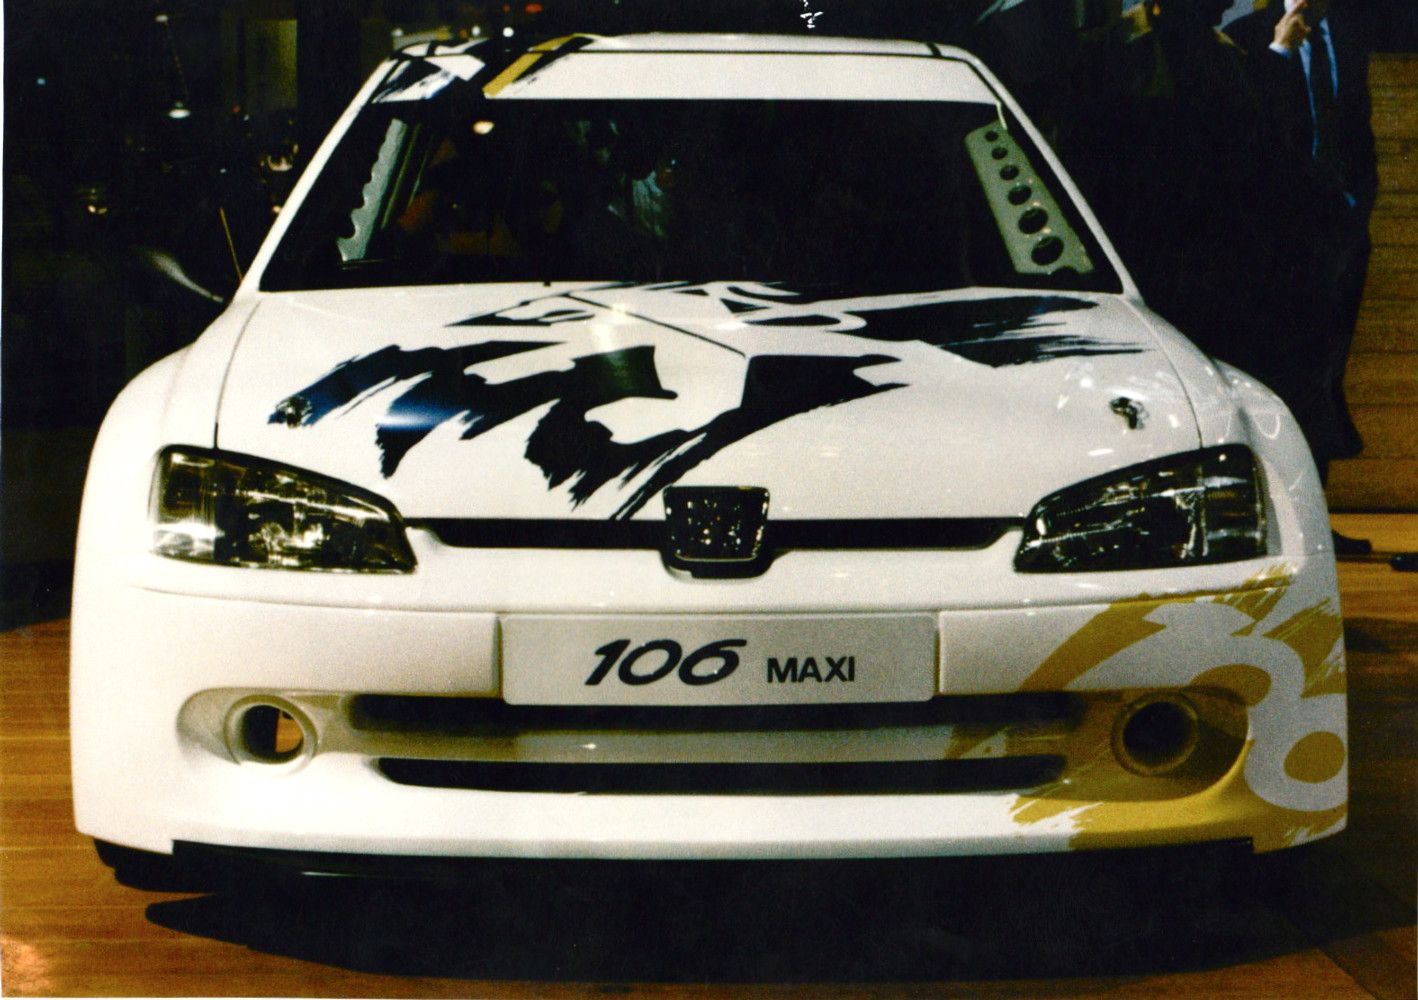 peugeot 106 maxi body kit rally car wallpaper rally car wallpaper different things. Black Bedroom Furniture Sets. Home Design Ideas